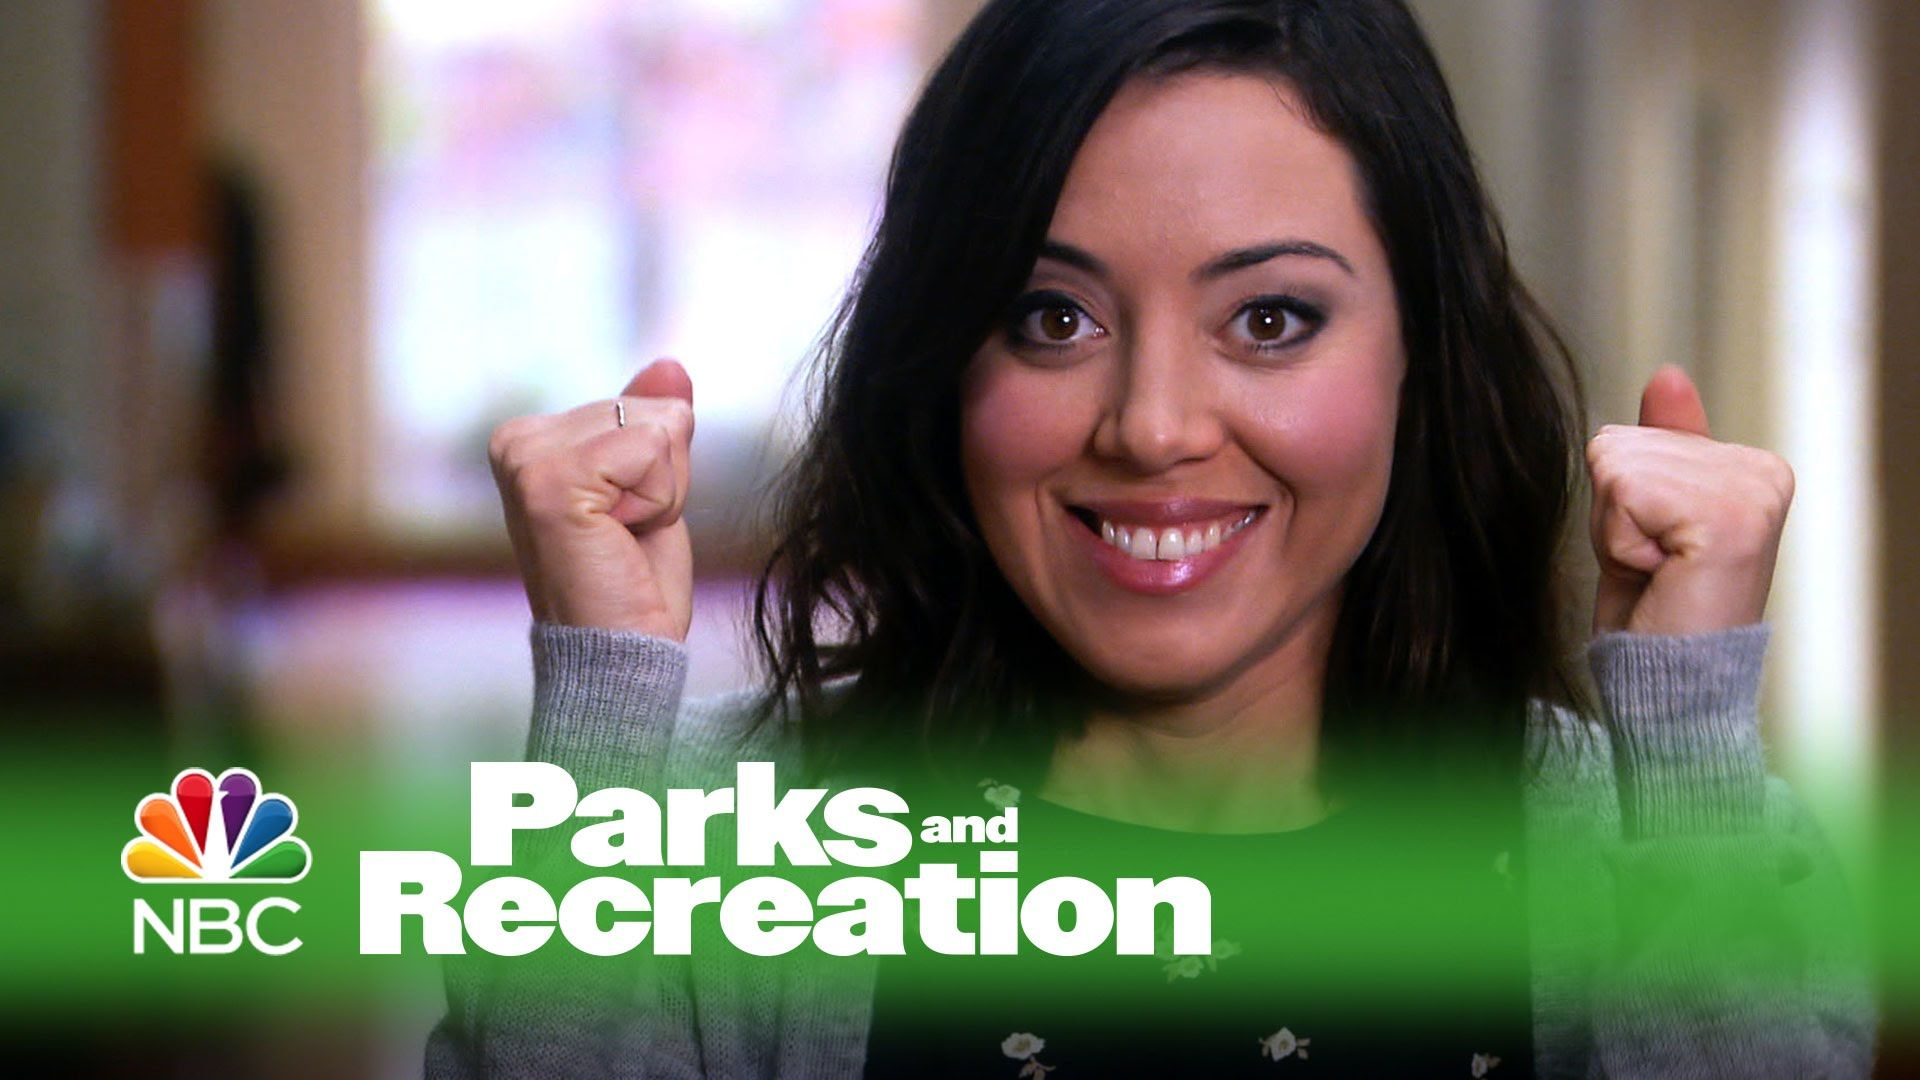 Parks and Recreation - April's All-Time Insults for Ann (Supercut). One of my favorite characters!